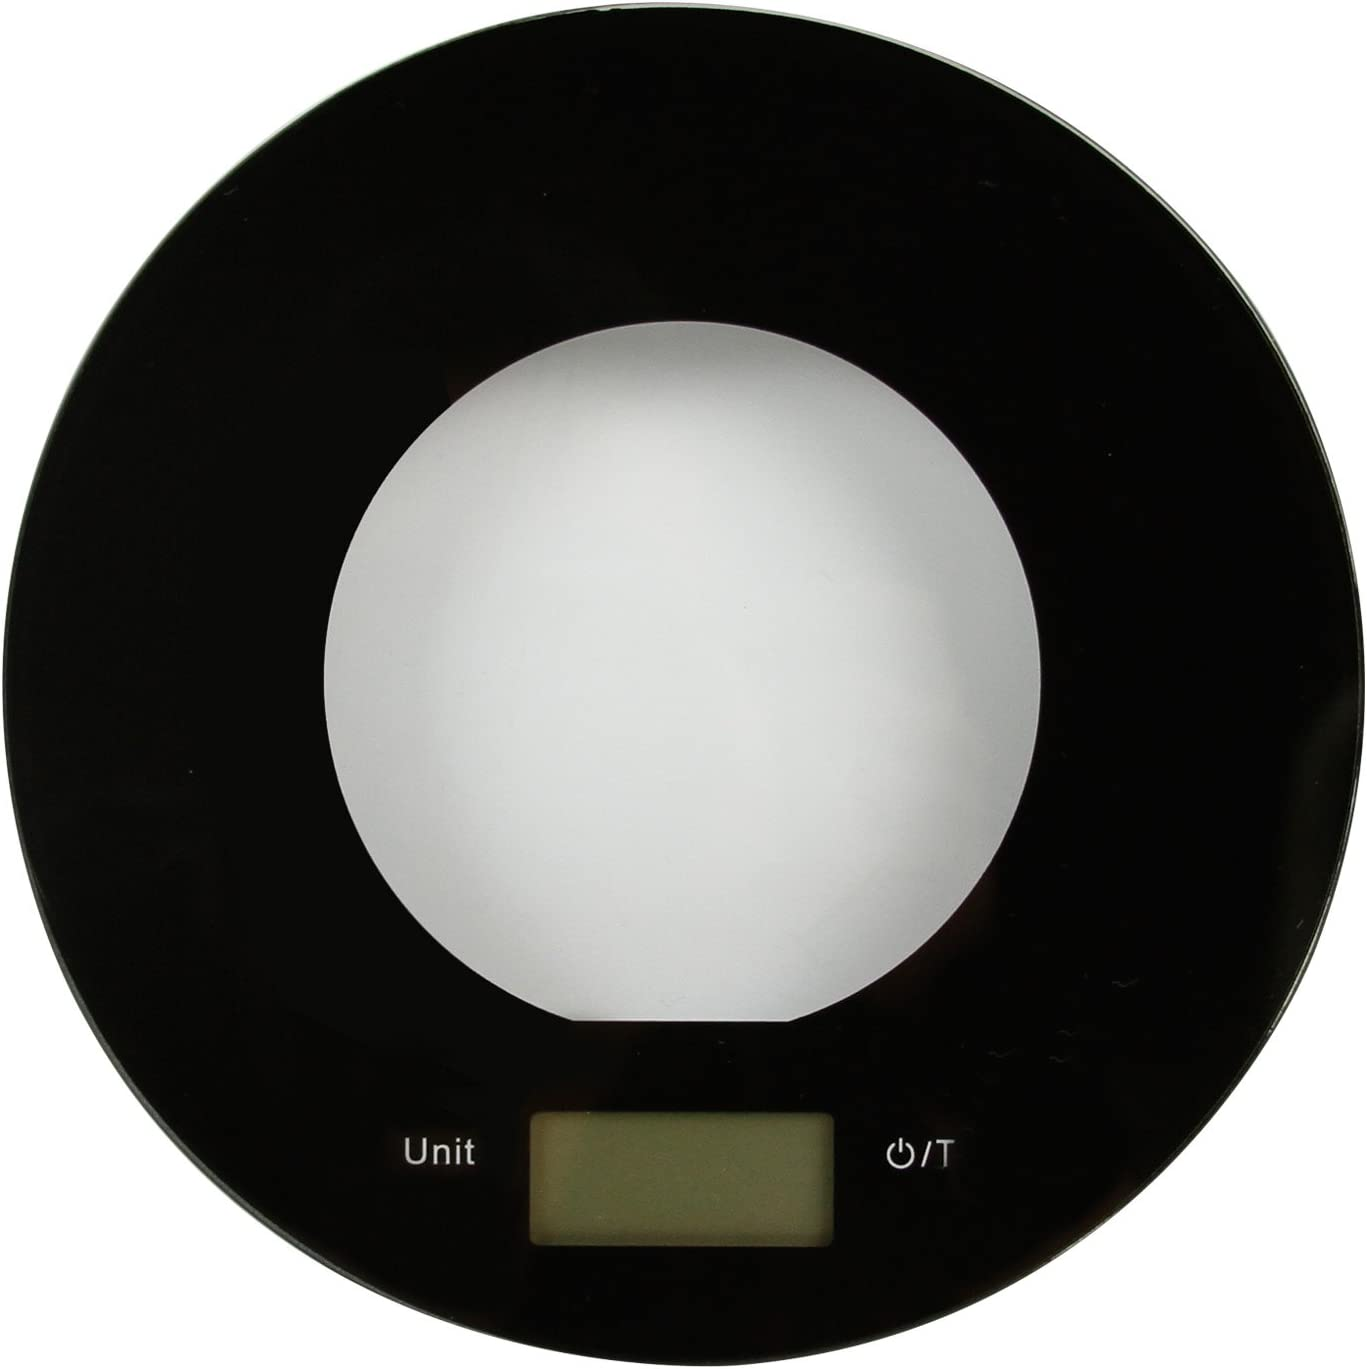 Evelyne Round Digital Kitchen Scale Glass Surface Ideal for Food Portion Measuring